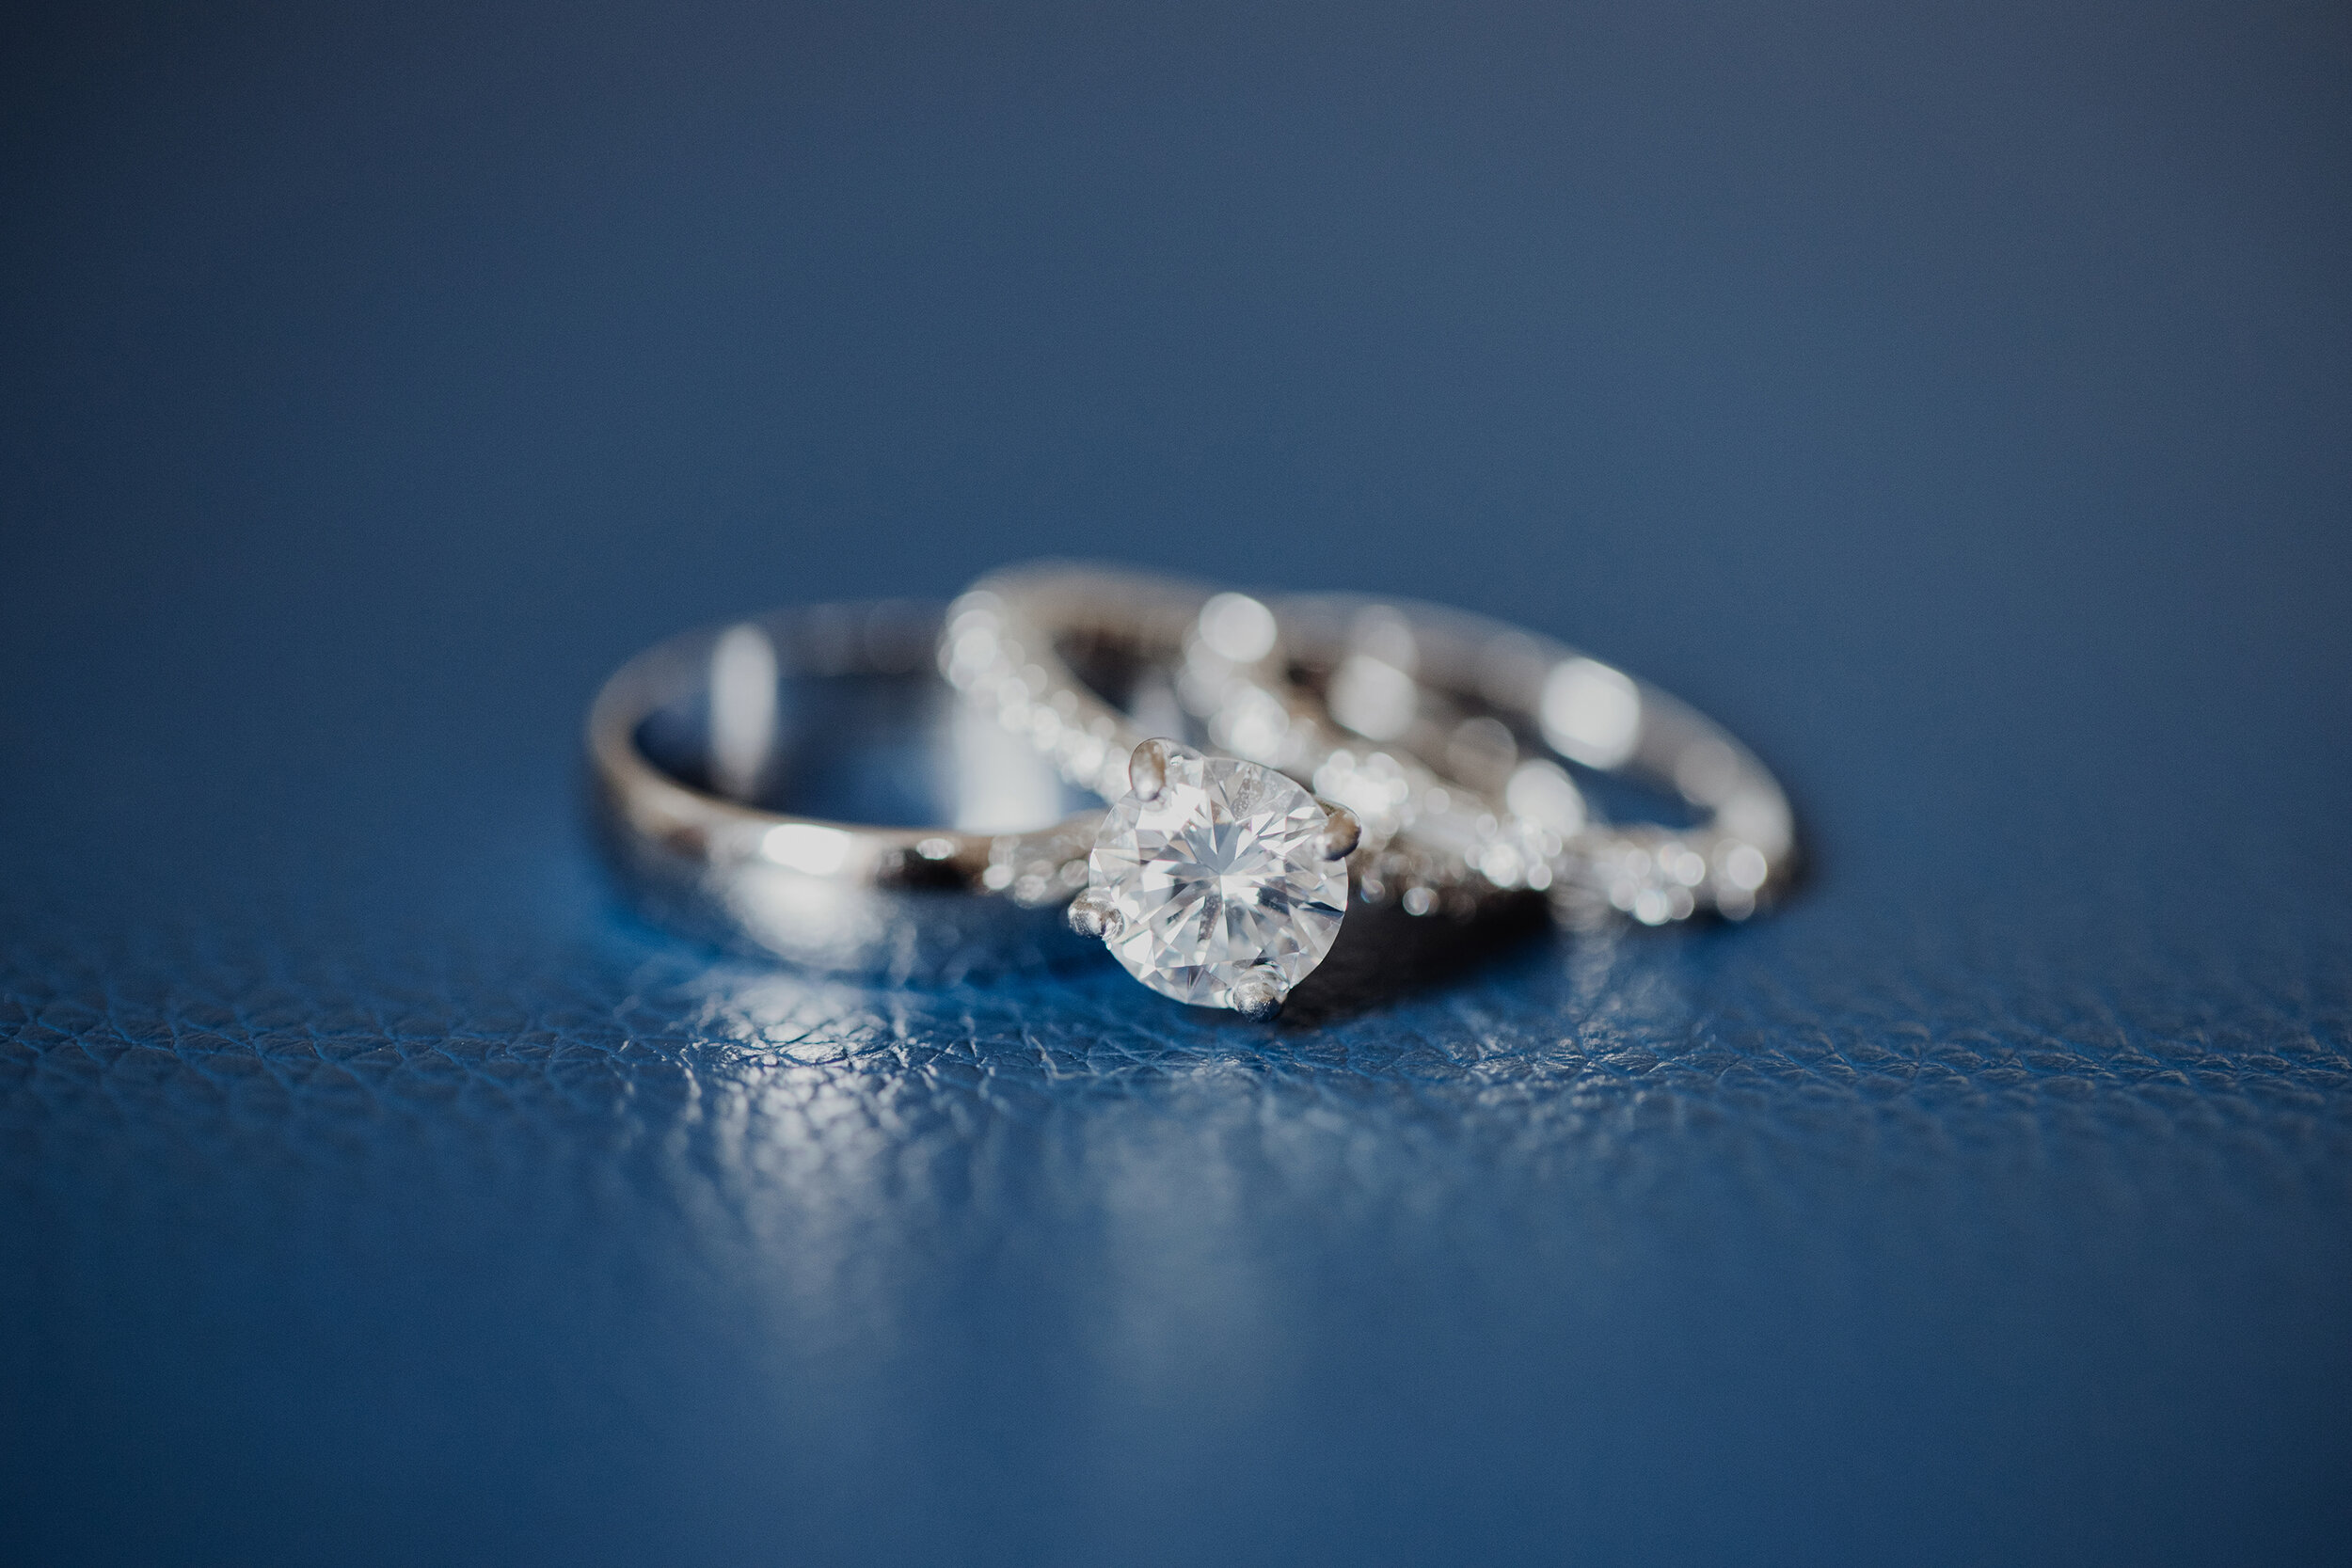 Nate and Nicole's beautiful wedding rings with her sparkling engagement ring